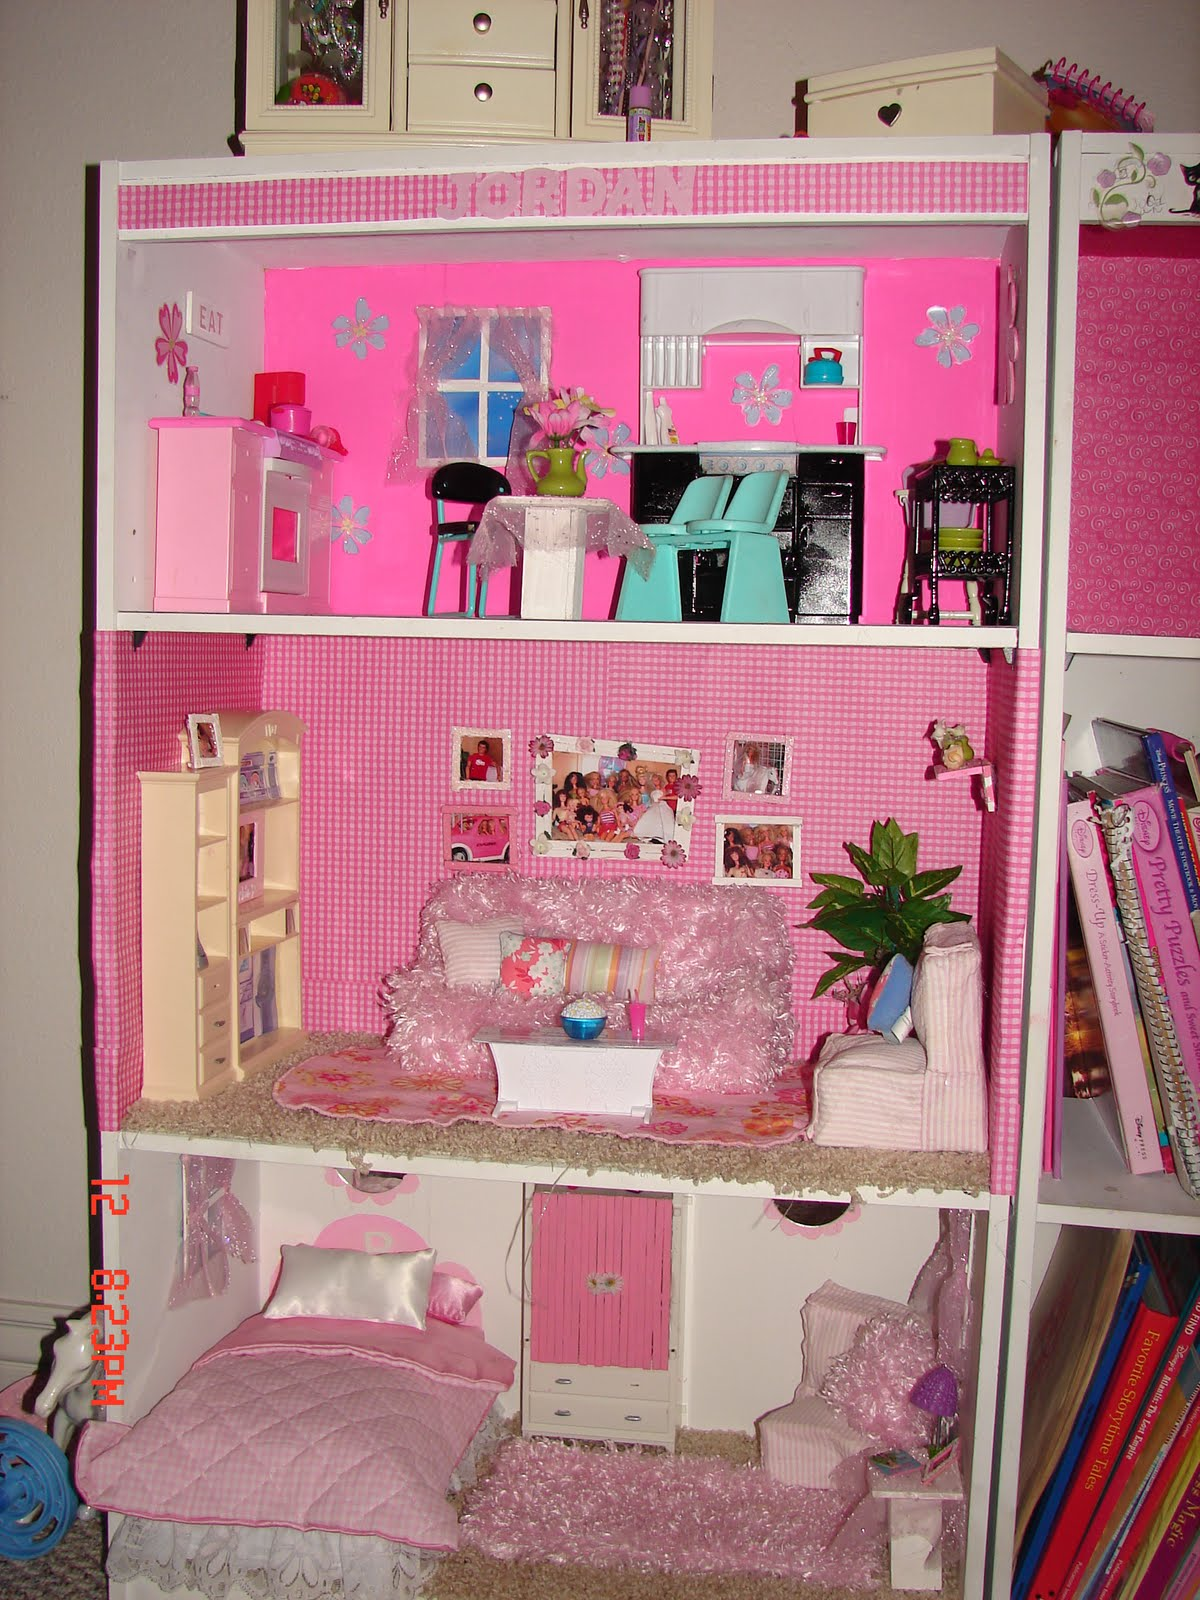 Make Your Own Barbie Furniture Property Delectable Diy Barbie House From A Shelf  A Girl And A Glue Gun Decorating Inspiration